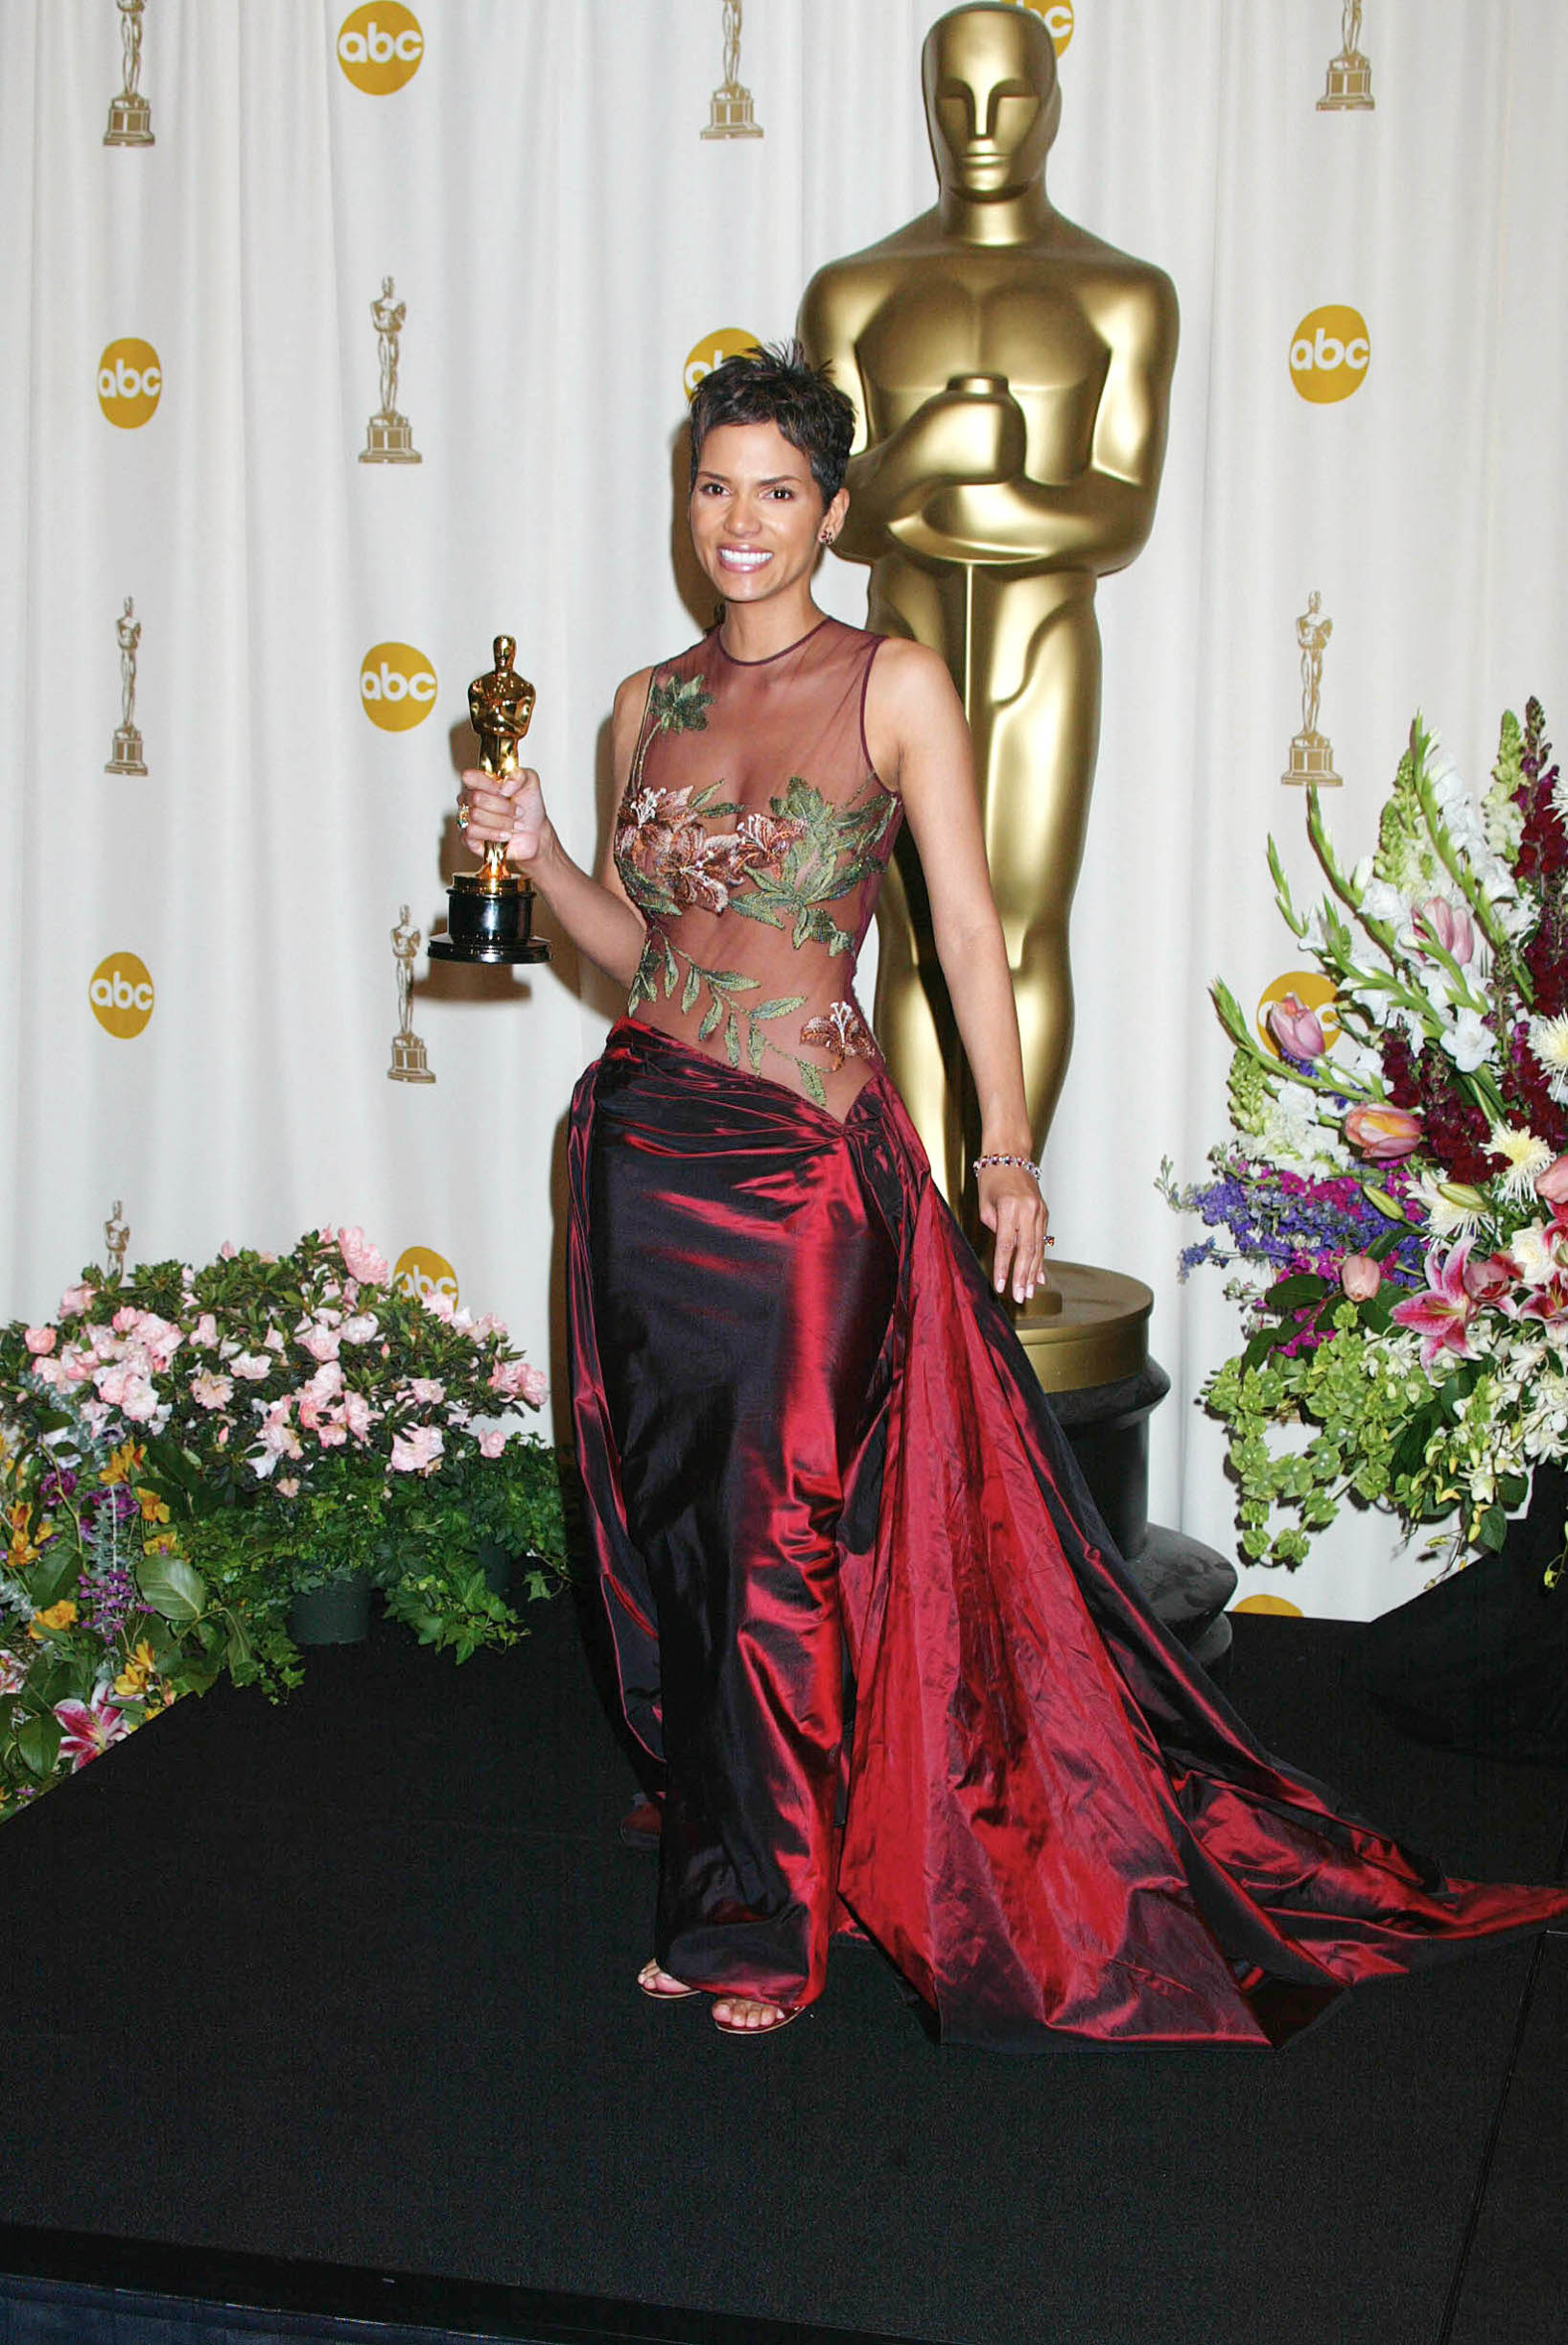 Halle Berry in the press room at The Oscars. ( The Kodak Theater, Hollywood, California ),Image: 17946692, License: Rights-managed, Restrictions: , Model Release: no, Credit line: Russ Einhorn / StarMax / Profimedia